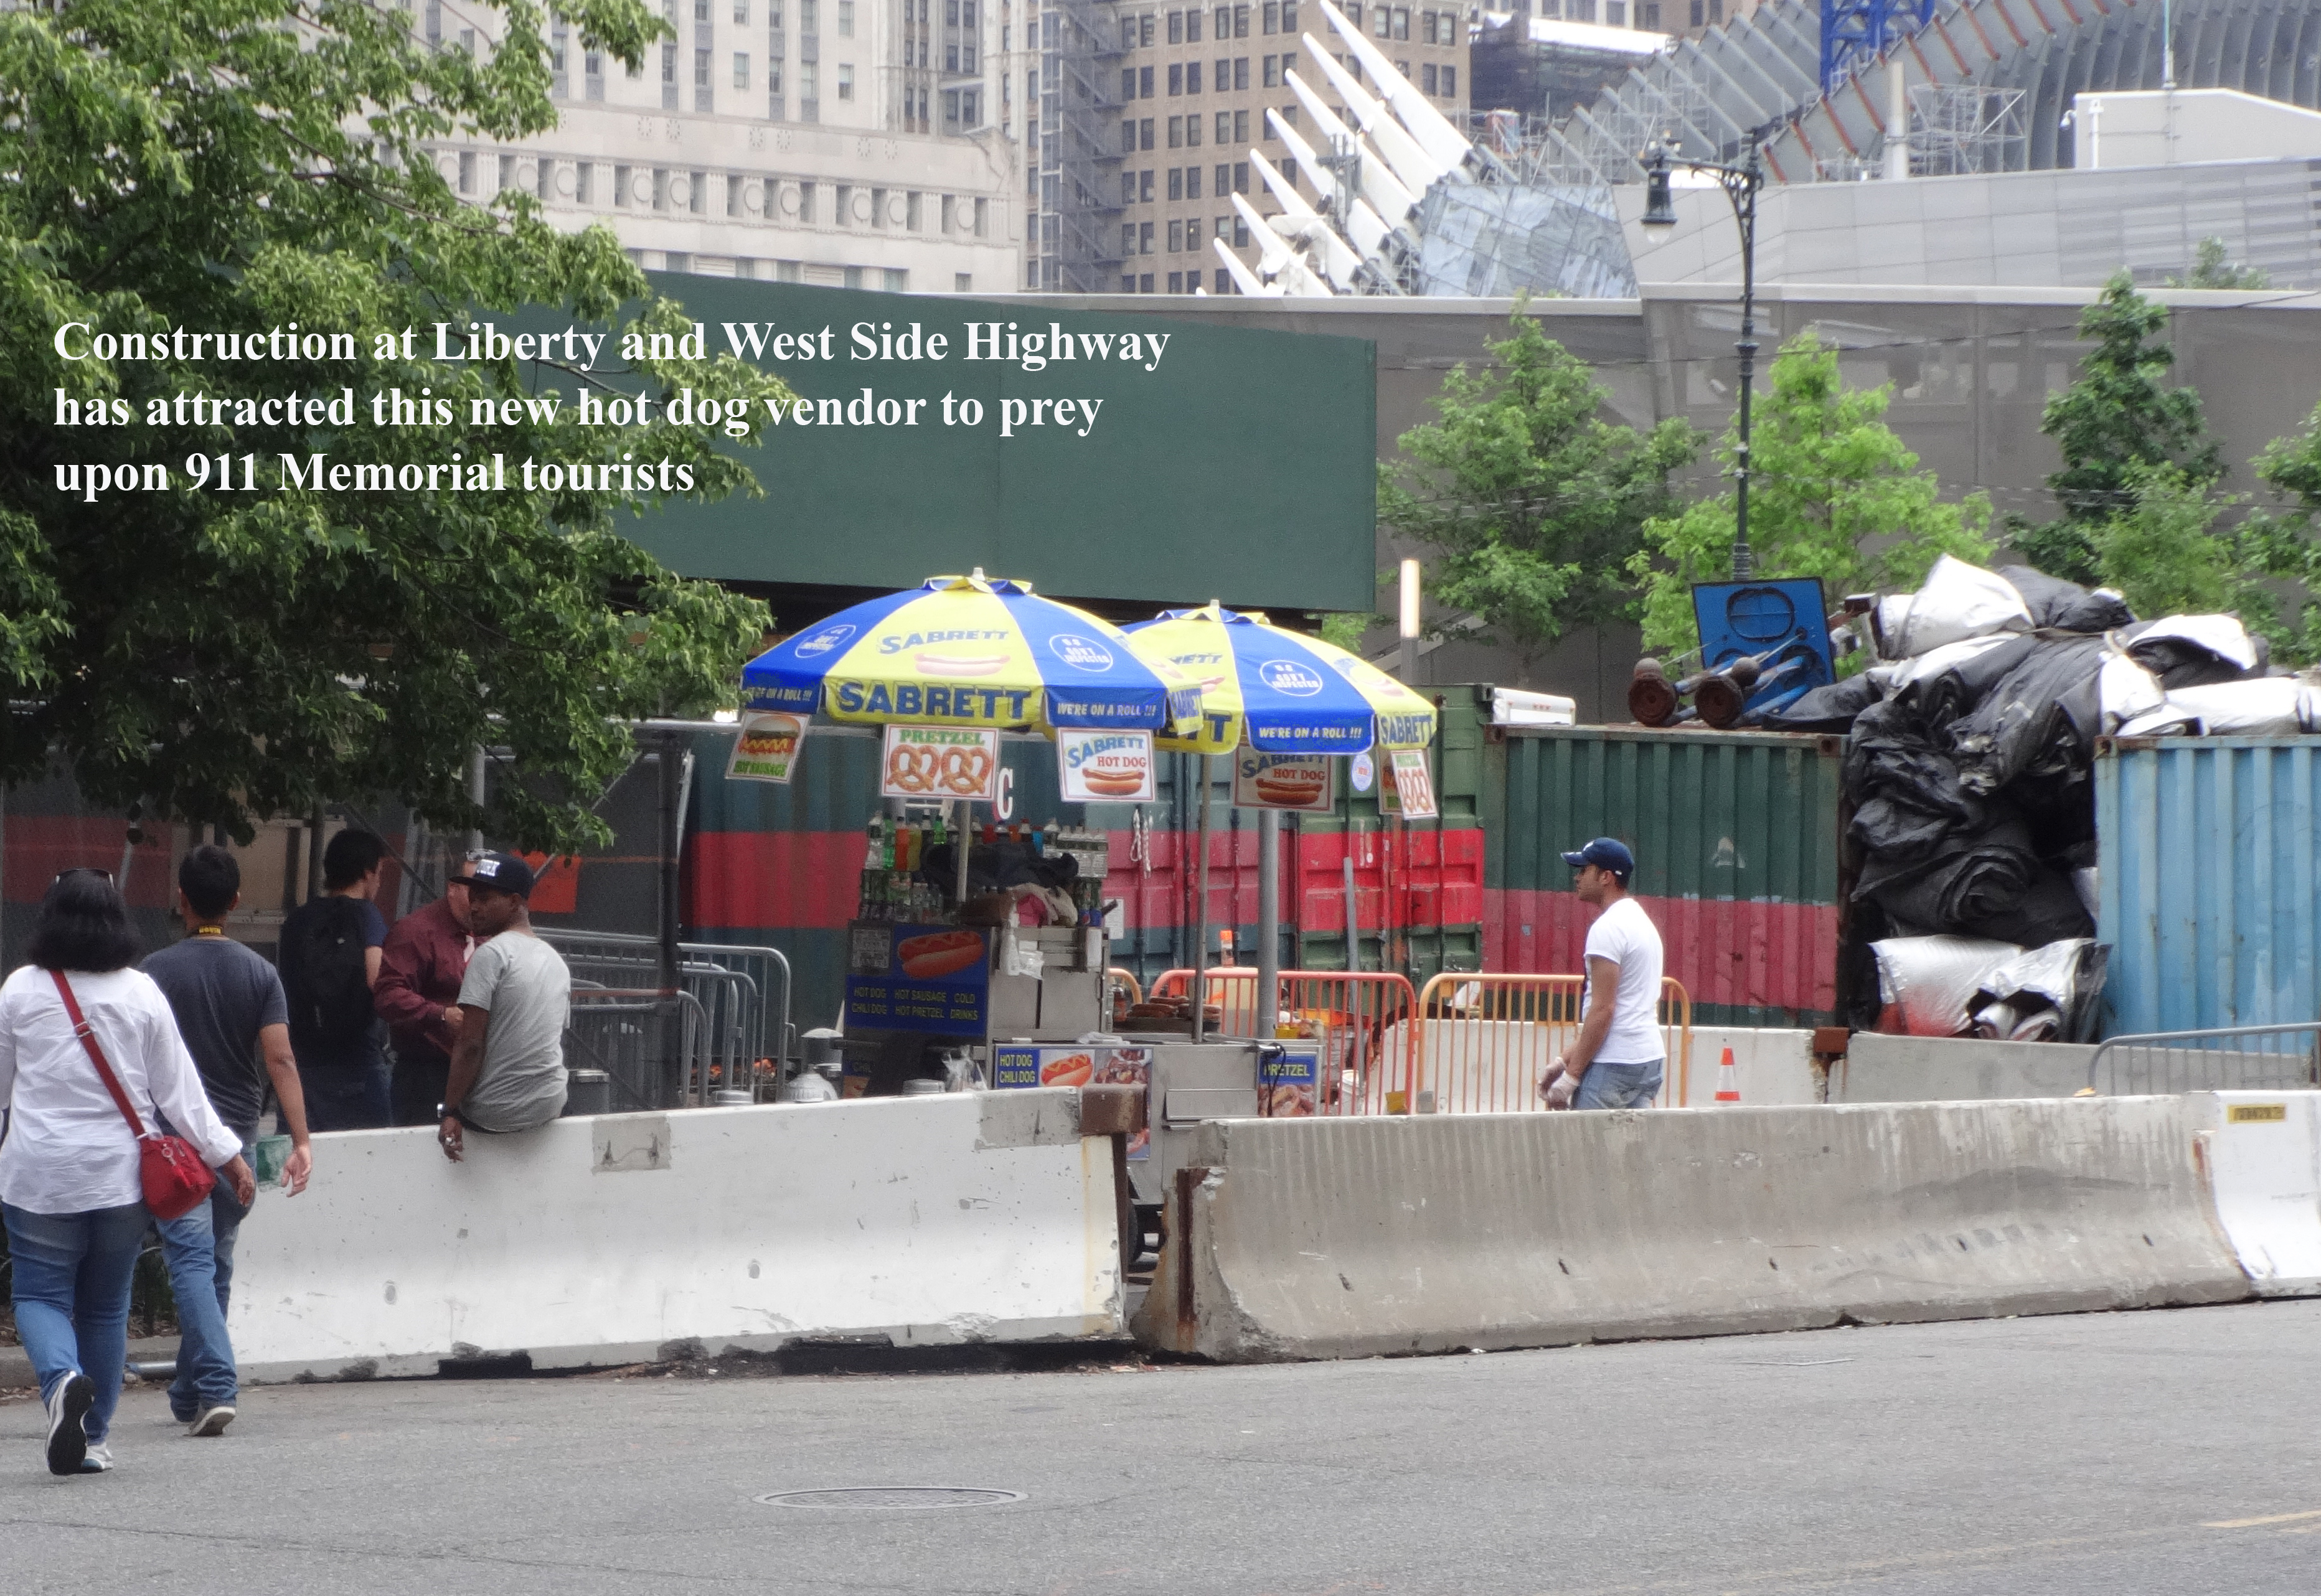 Hot dog vendor at Liberty and West Side Highway